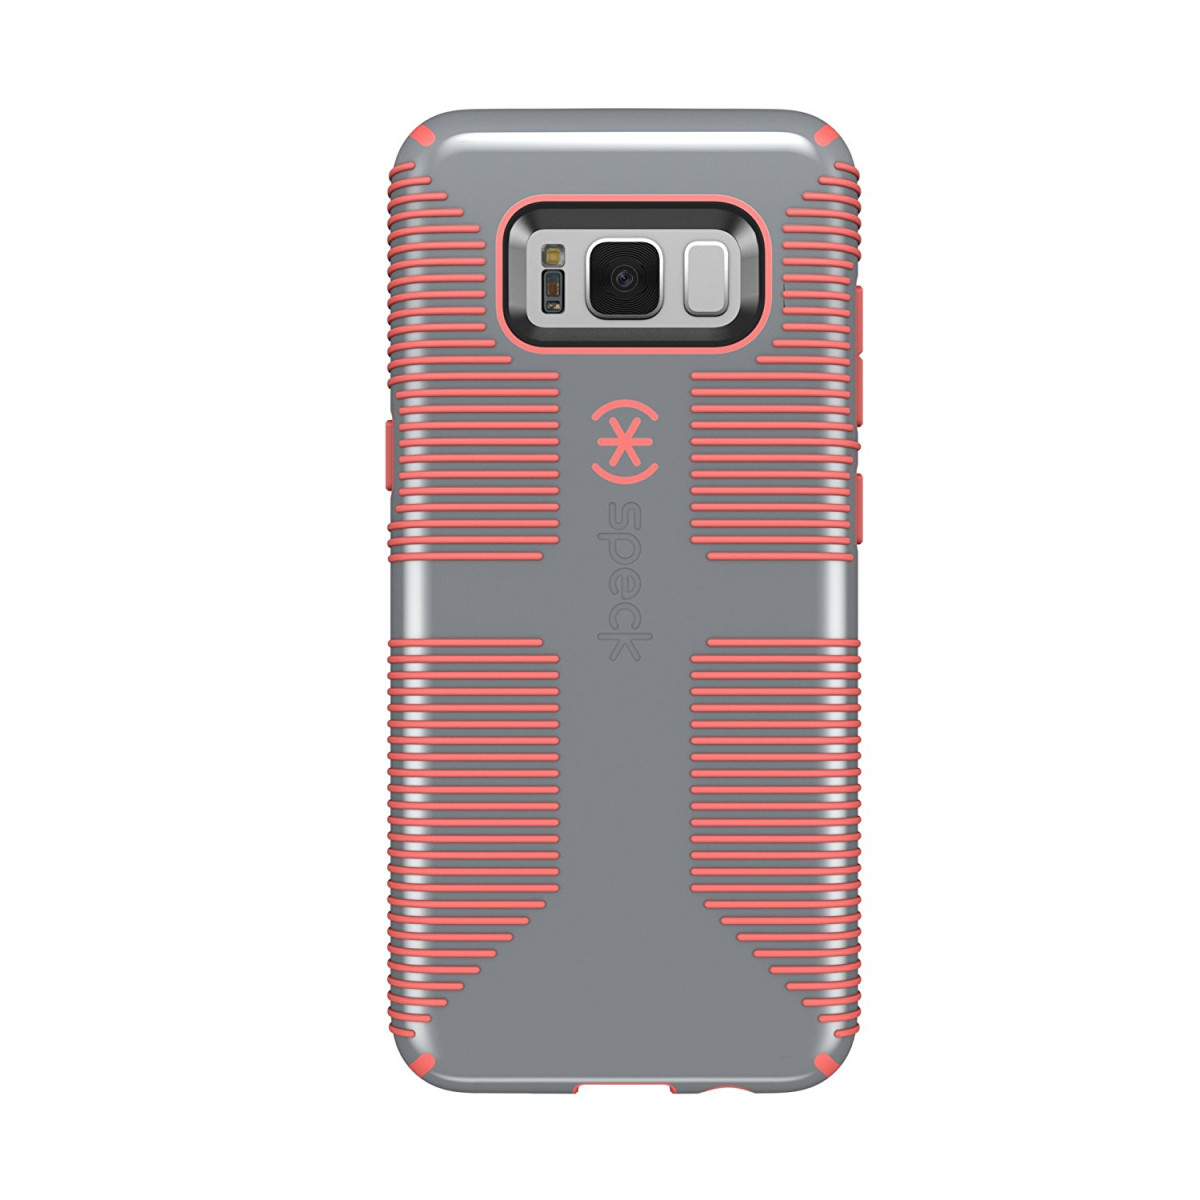 meet 451a9 7c7f5 Speck Products CandyShell Grip Cell Phone Case for Samsung Galaxy S8 -  Nickel Grey/Warning Orange